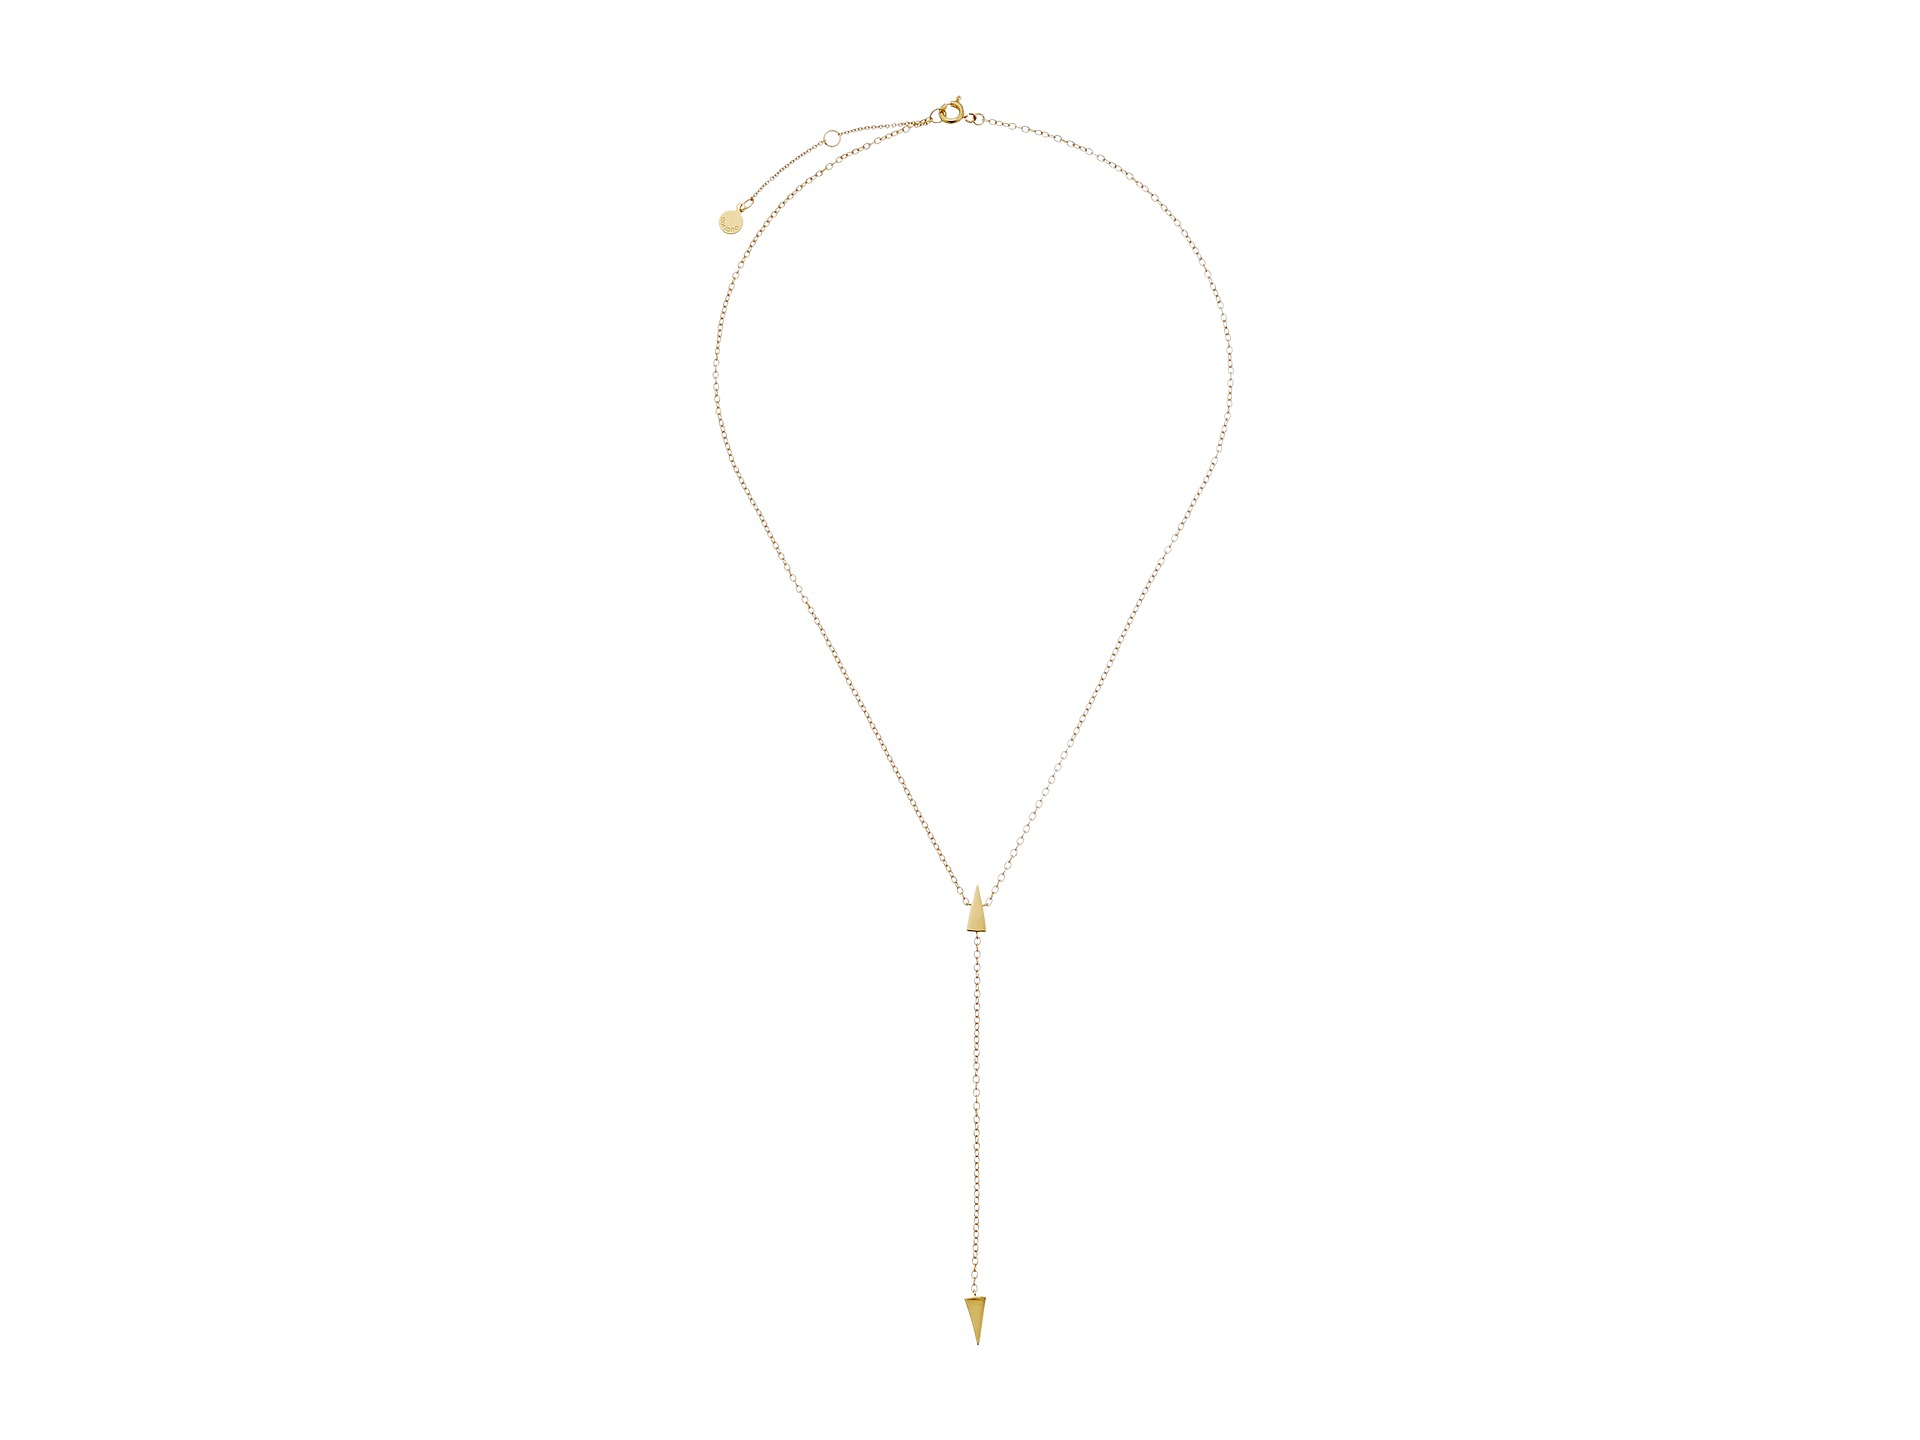 Gorjana Takara Lariat Necklace in Metallic Gold XXRjXz3C0